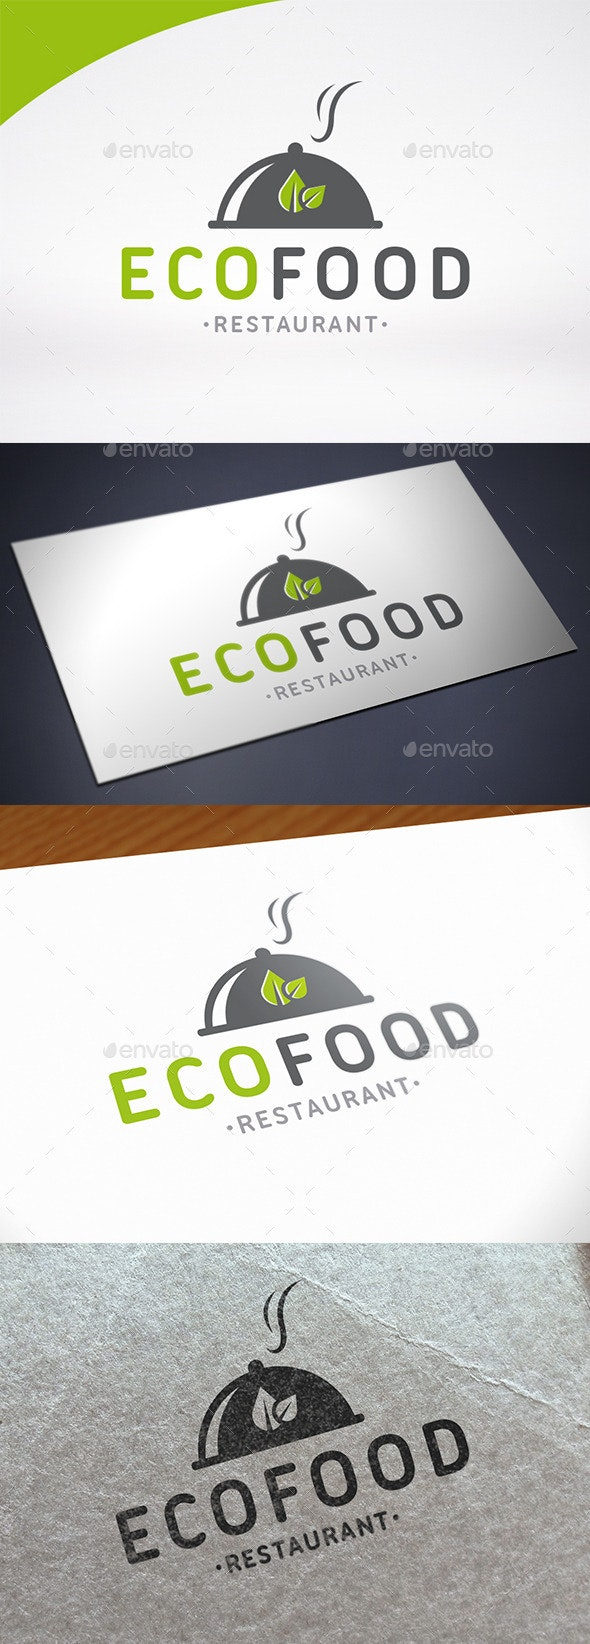 Eco Restaurant Logo Template - Restaurant Logo Templates